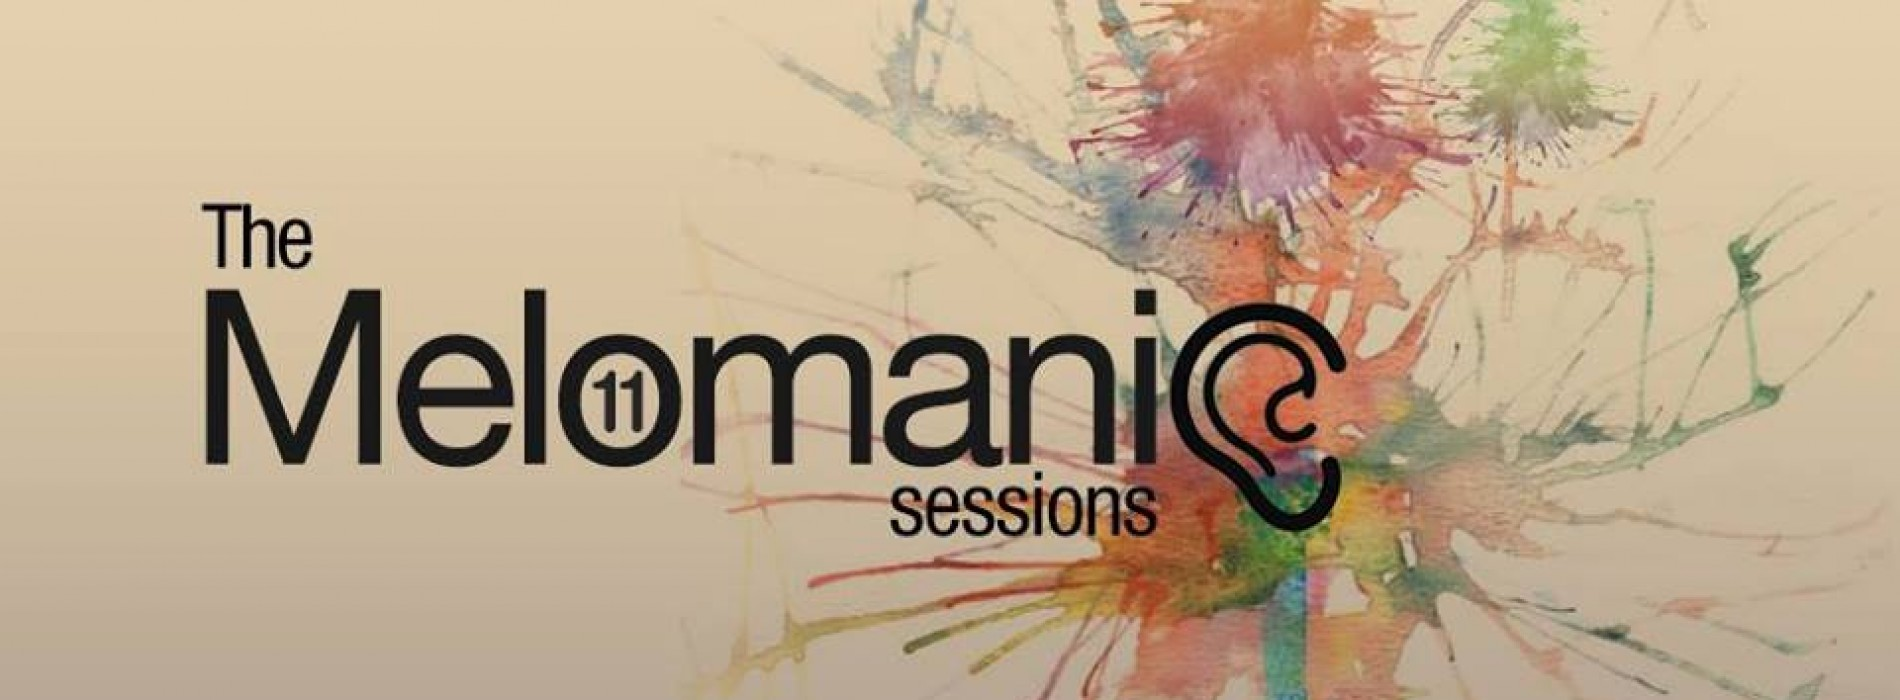 the melomanic sessions